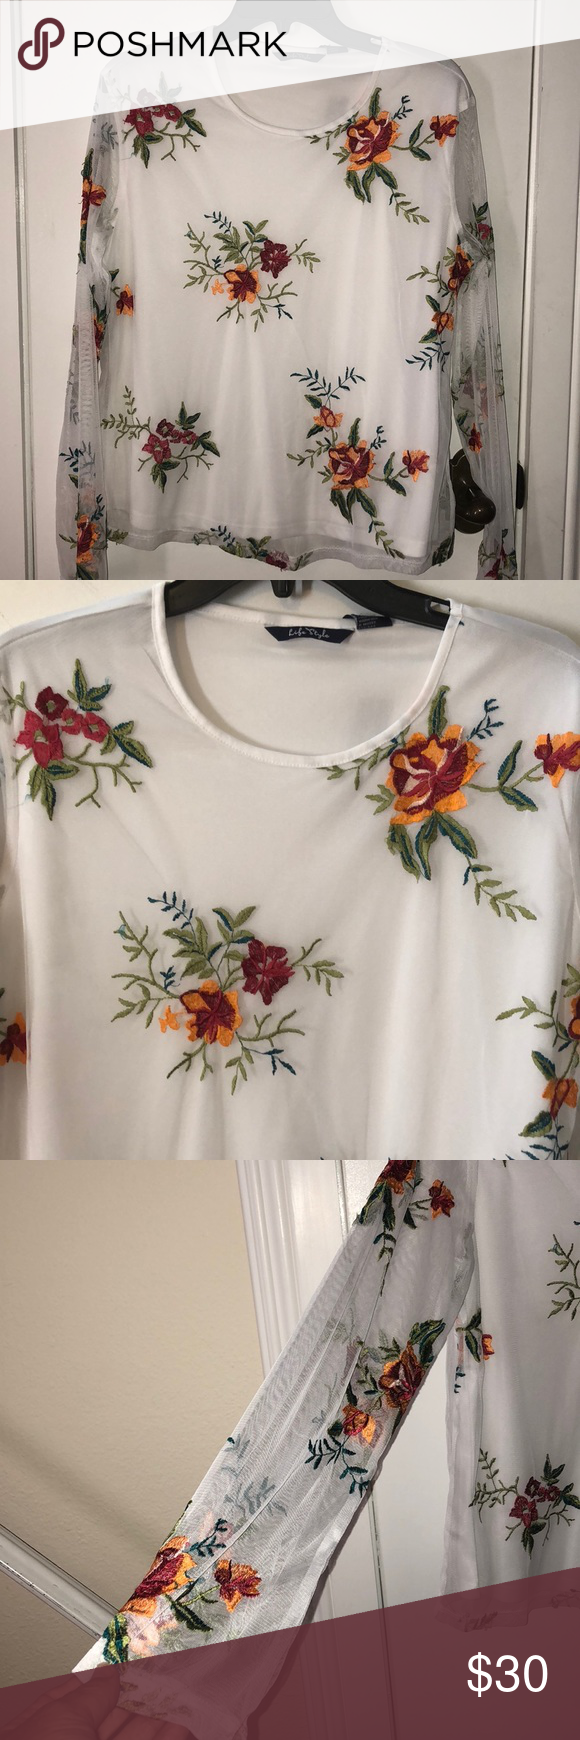 Nwt life style white with flowers size lg in 2018 my posh closet nwt life style white with flowers size lg nwt beautiful white top with a mesh cover with embroidered flowers on it has long sleeves made of mesh mightylinksfo